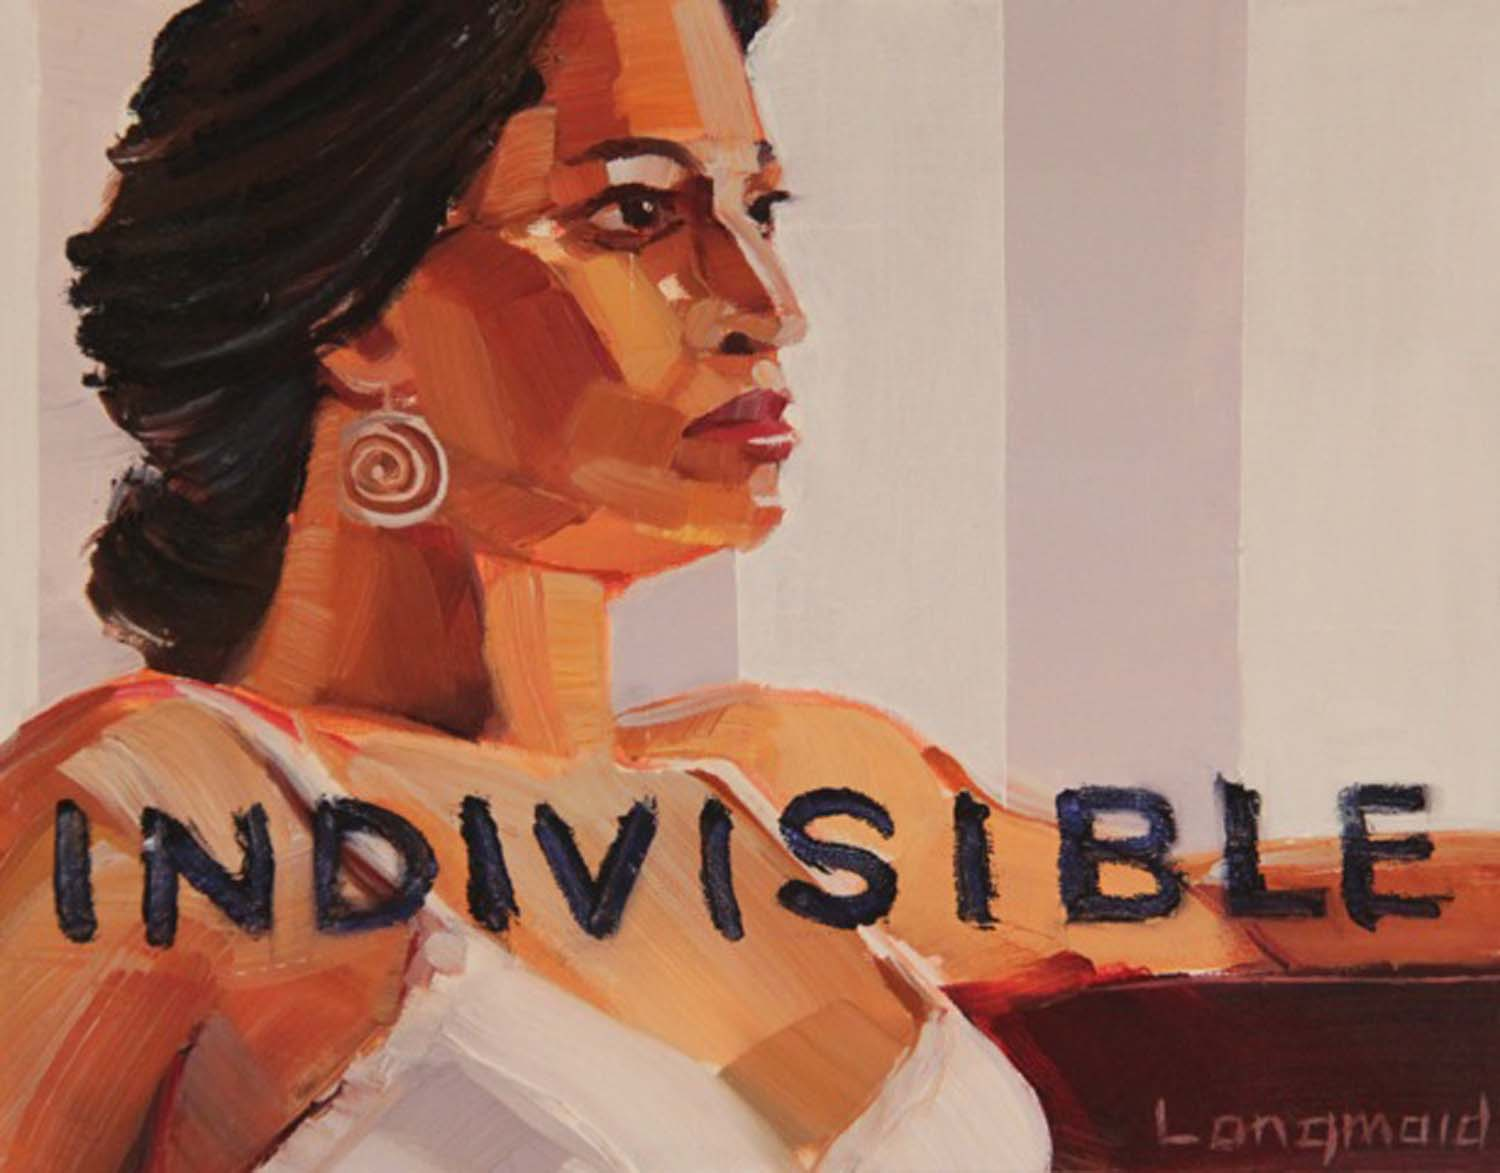 Indivisible, 2013 & 2017